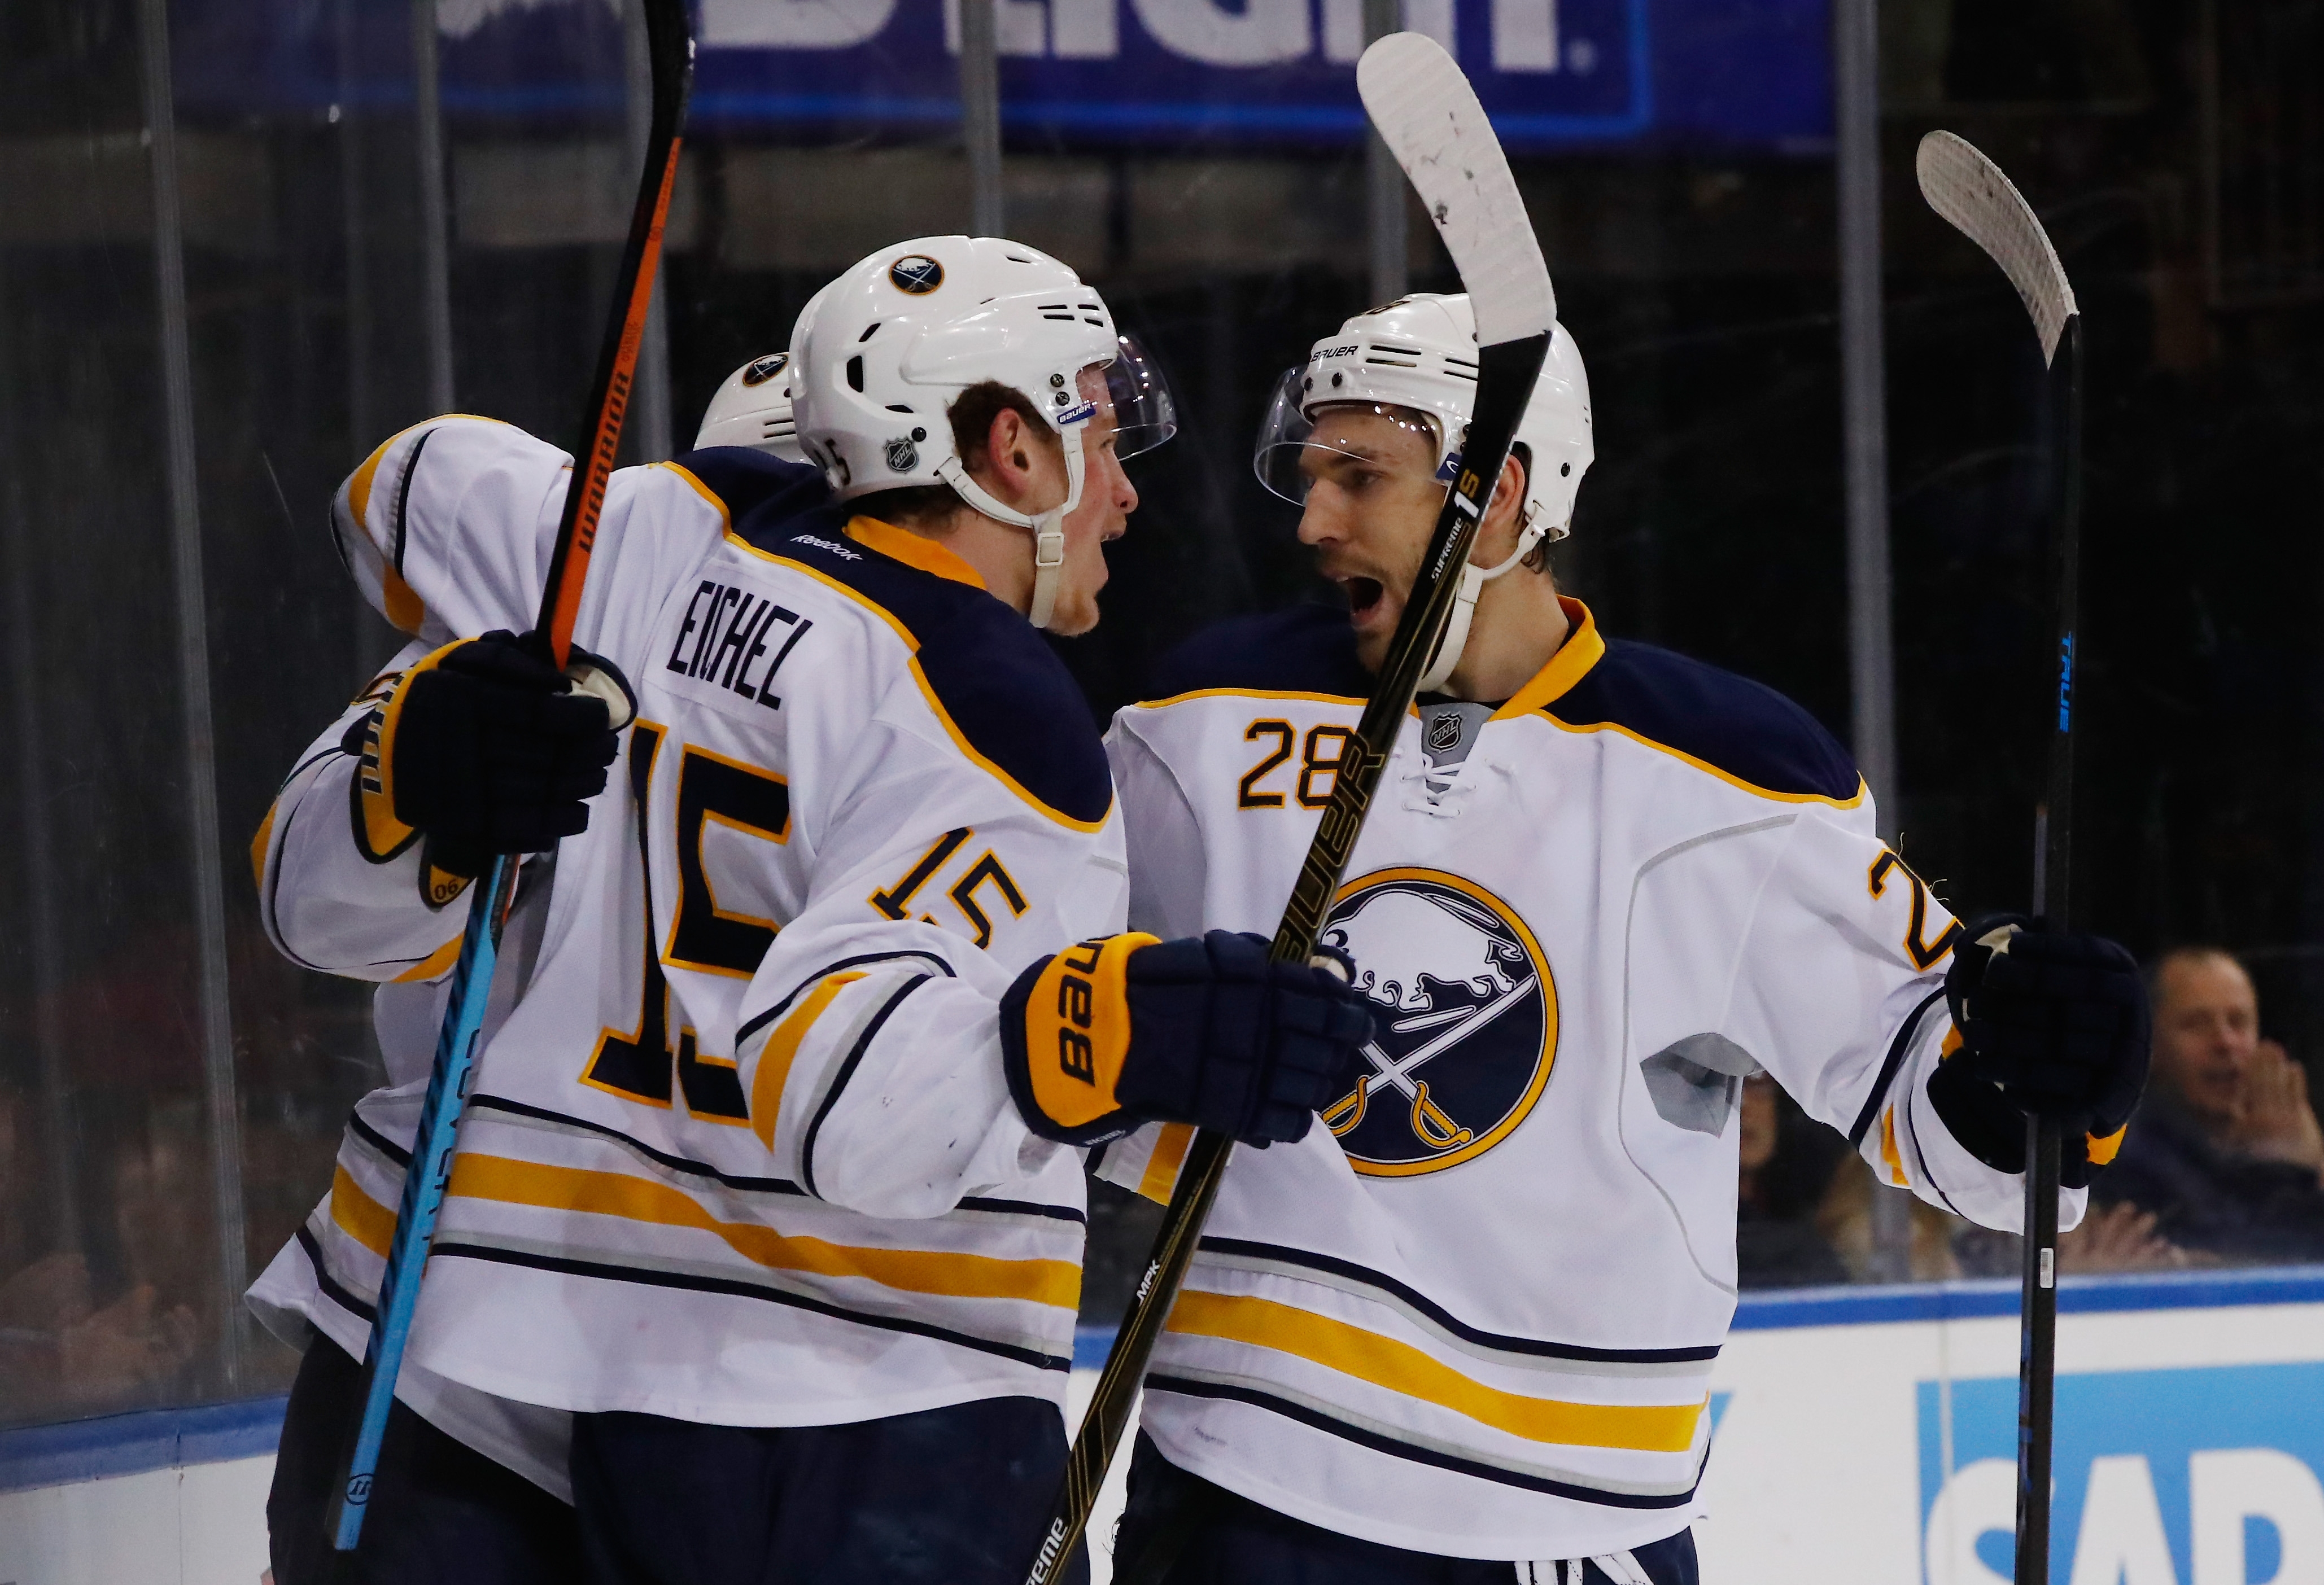 Jack Eichel of the Buffalo Sabres celebrates his goal with Zemgus Girgensons against the New York Rangers during their game at Madison Square Garden on Saturday in New York City.